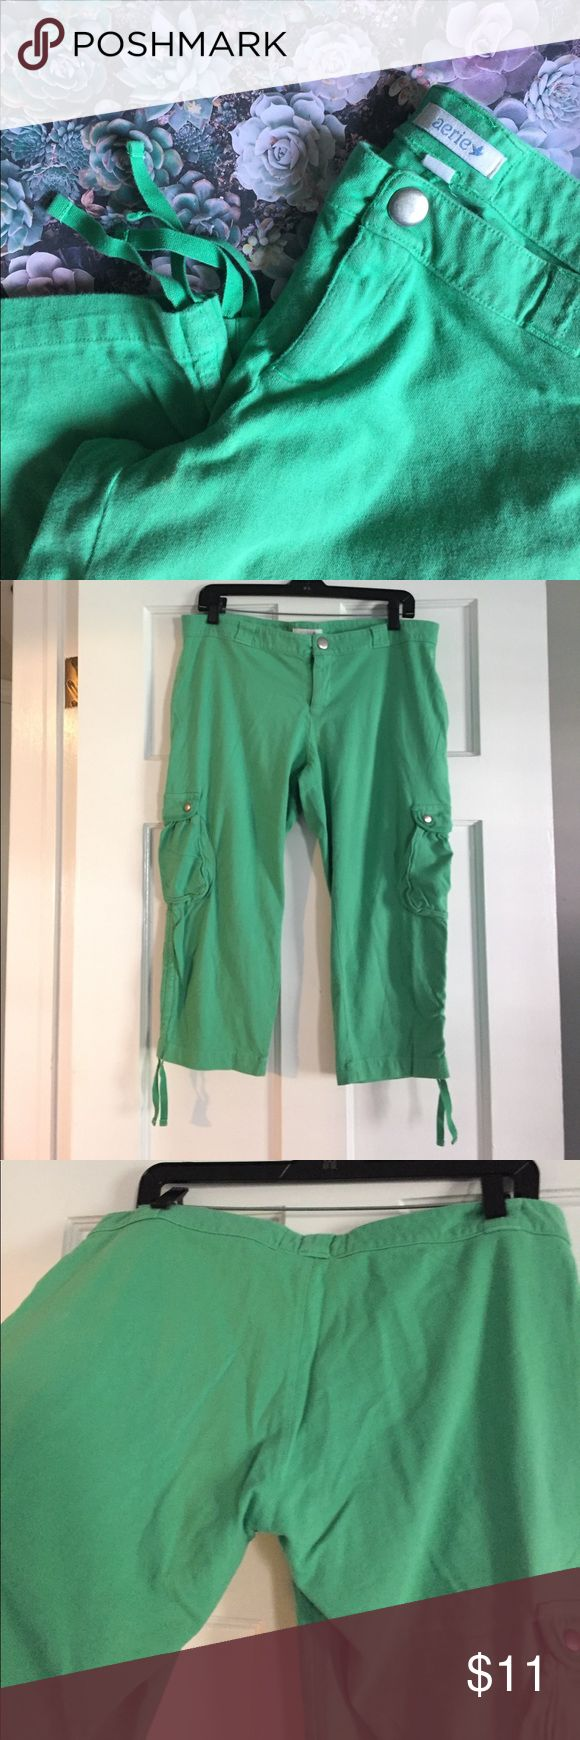 Aerie ☁️ Lounge Pants Aerie cargo lounge capris in bright kelly green. Excellent condition! Waist measures 17 1/2. Size small but definitely runs larger. I would say these fit like extra large. Snap button closure with zipper. 2 side cargo pockets, 2 hand pockets. aerie Pants Capris